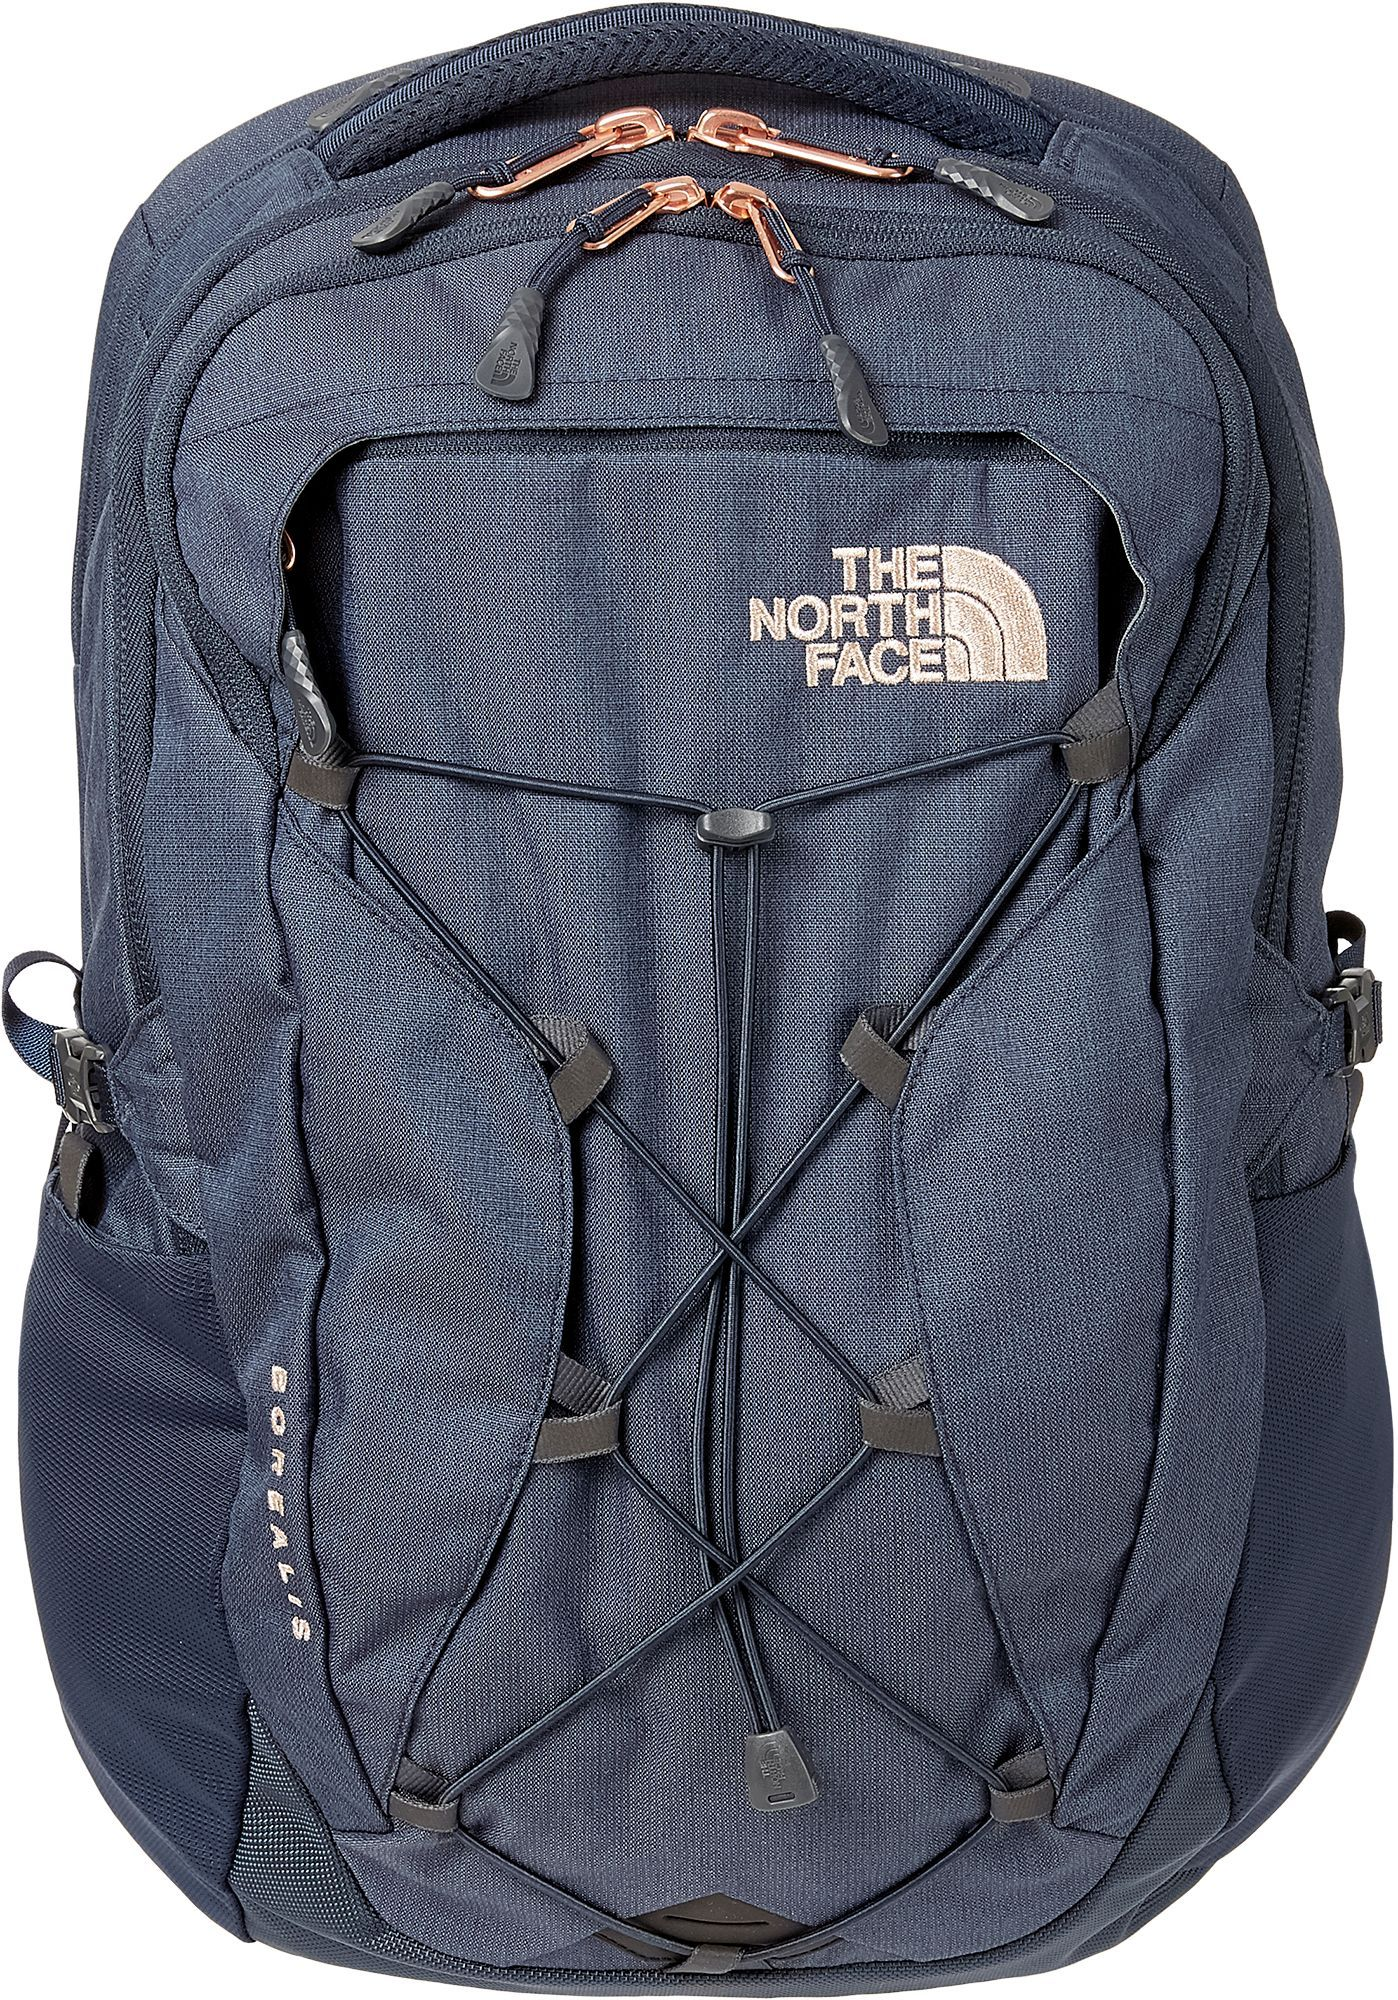 ab122562a The North Face Women's Borealis Luxe Backpack, Gray in 2019 ...